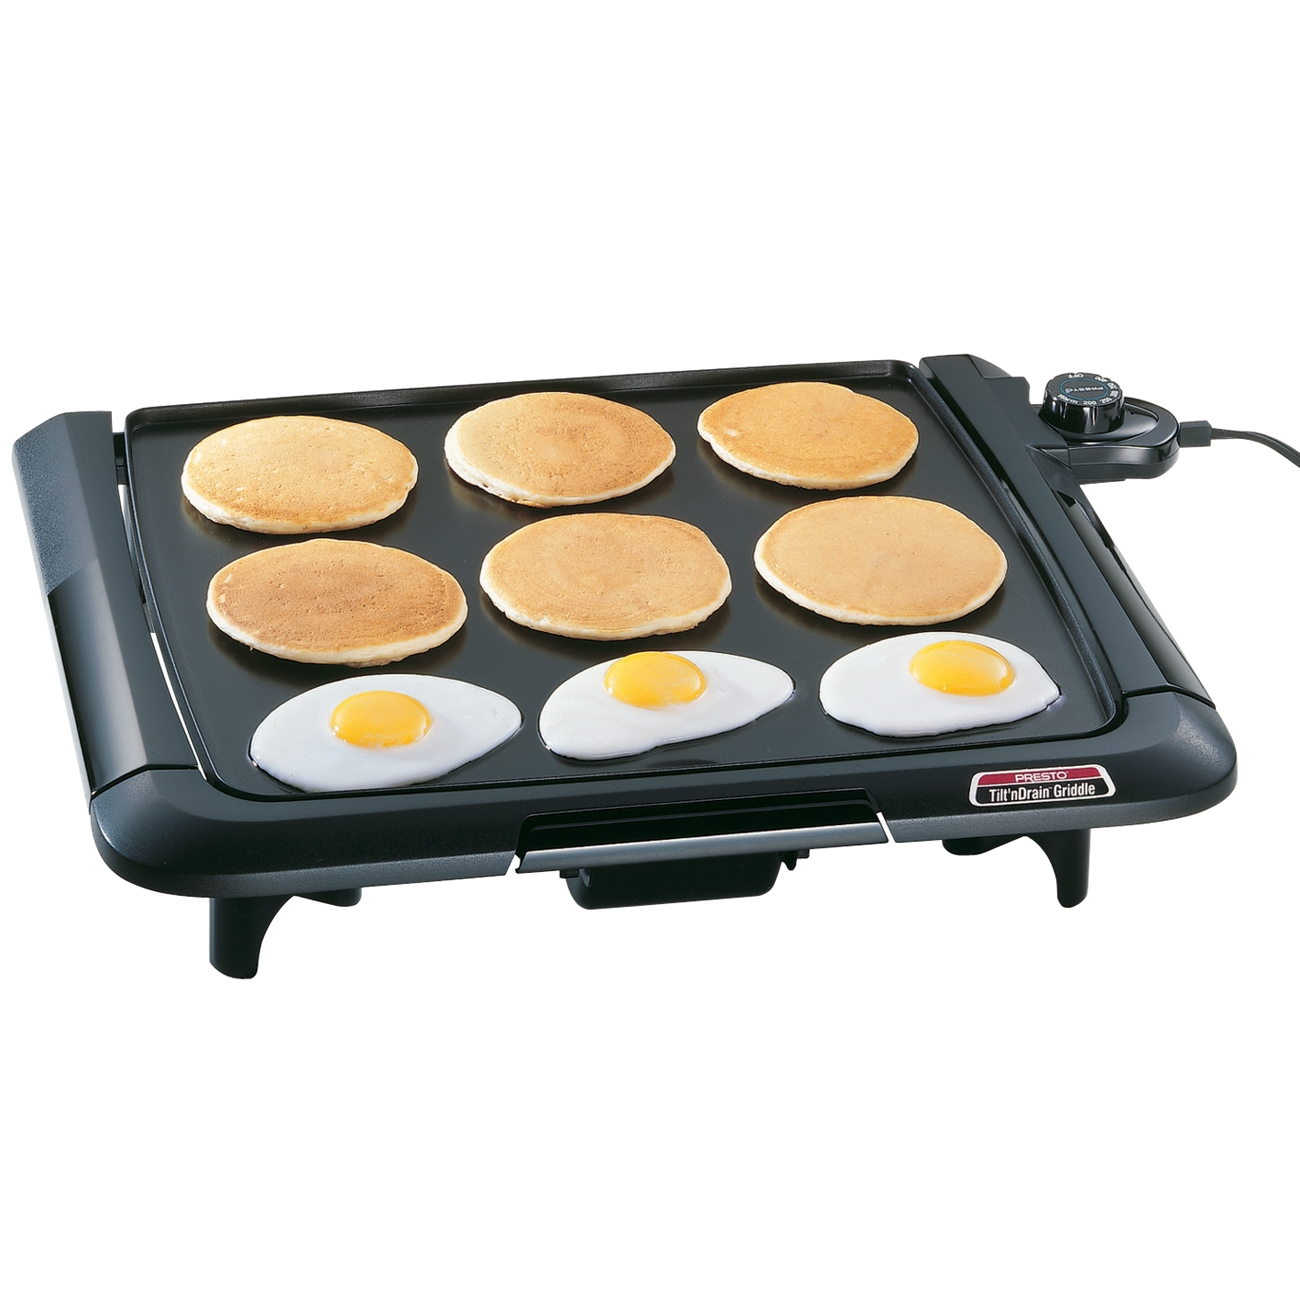 Presto Cool Touch Electric Tilt 'n' Drain Griddle